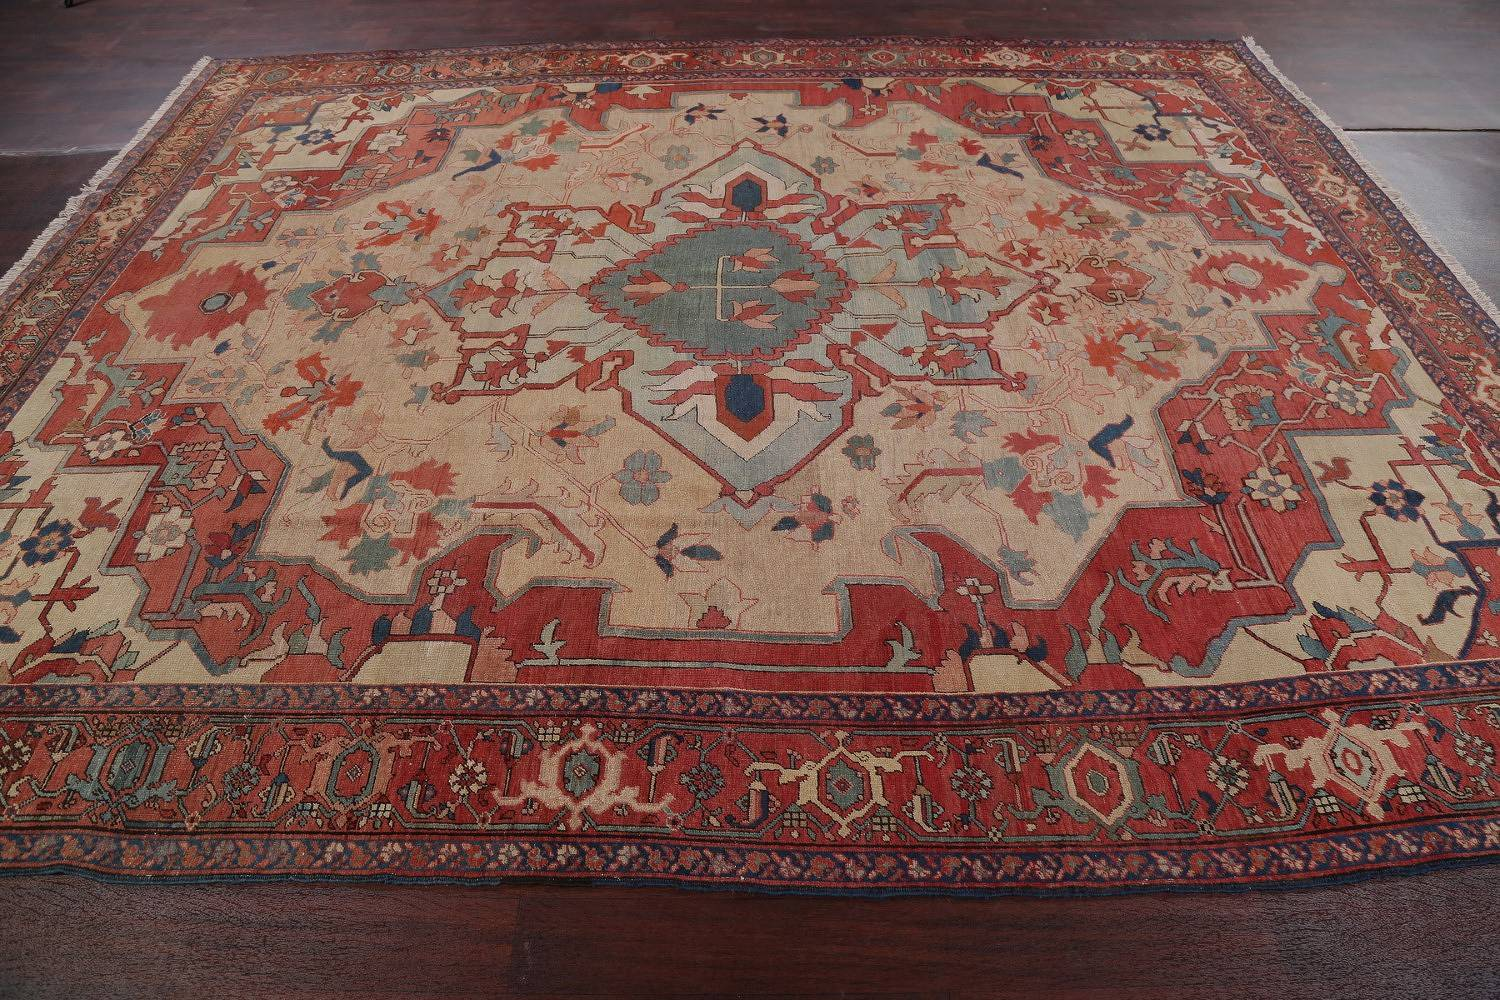 Antique Vegetable Dye Geometric Beige Heriz Bakhshayesh Persian Area Rug Wool 9x12